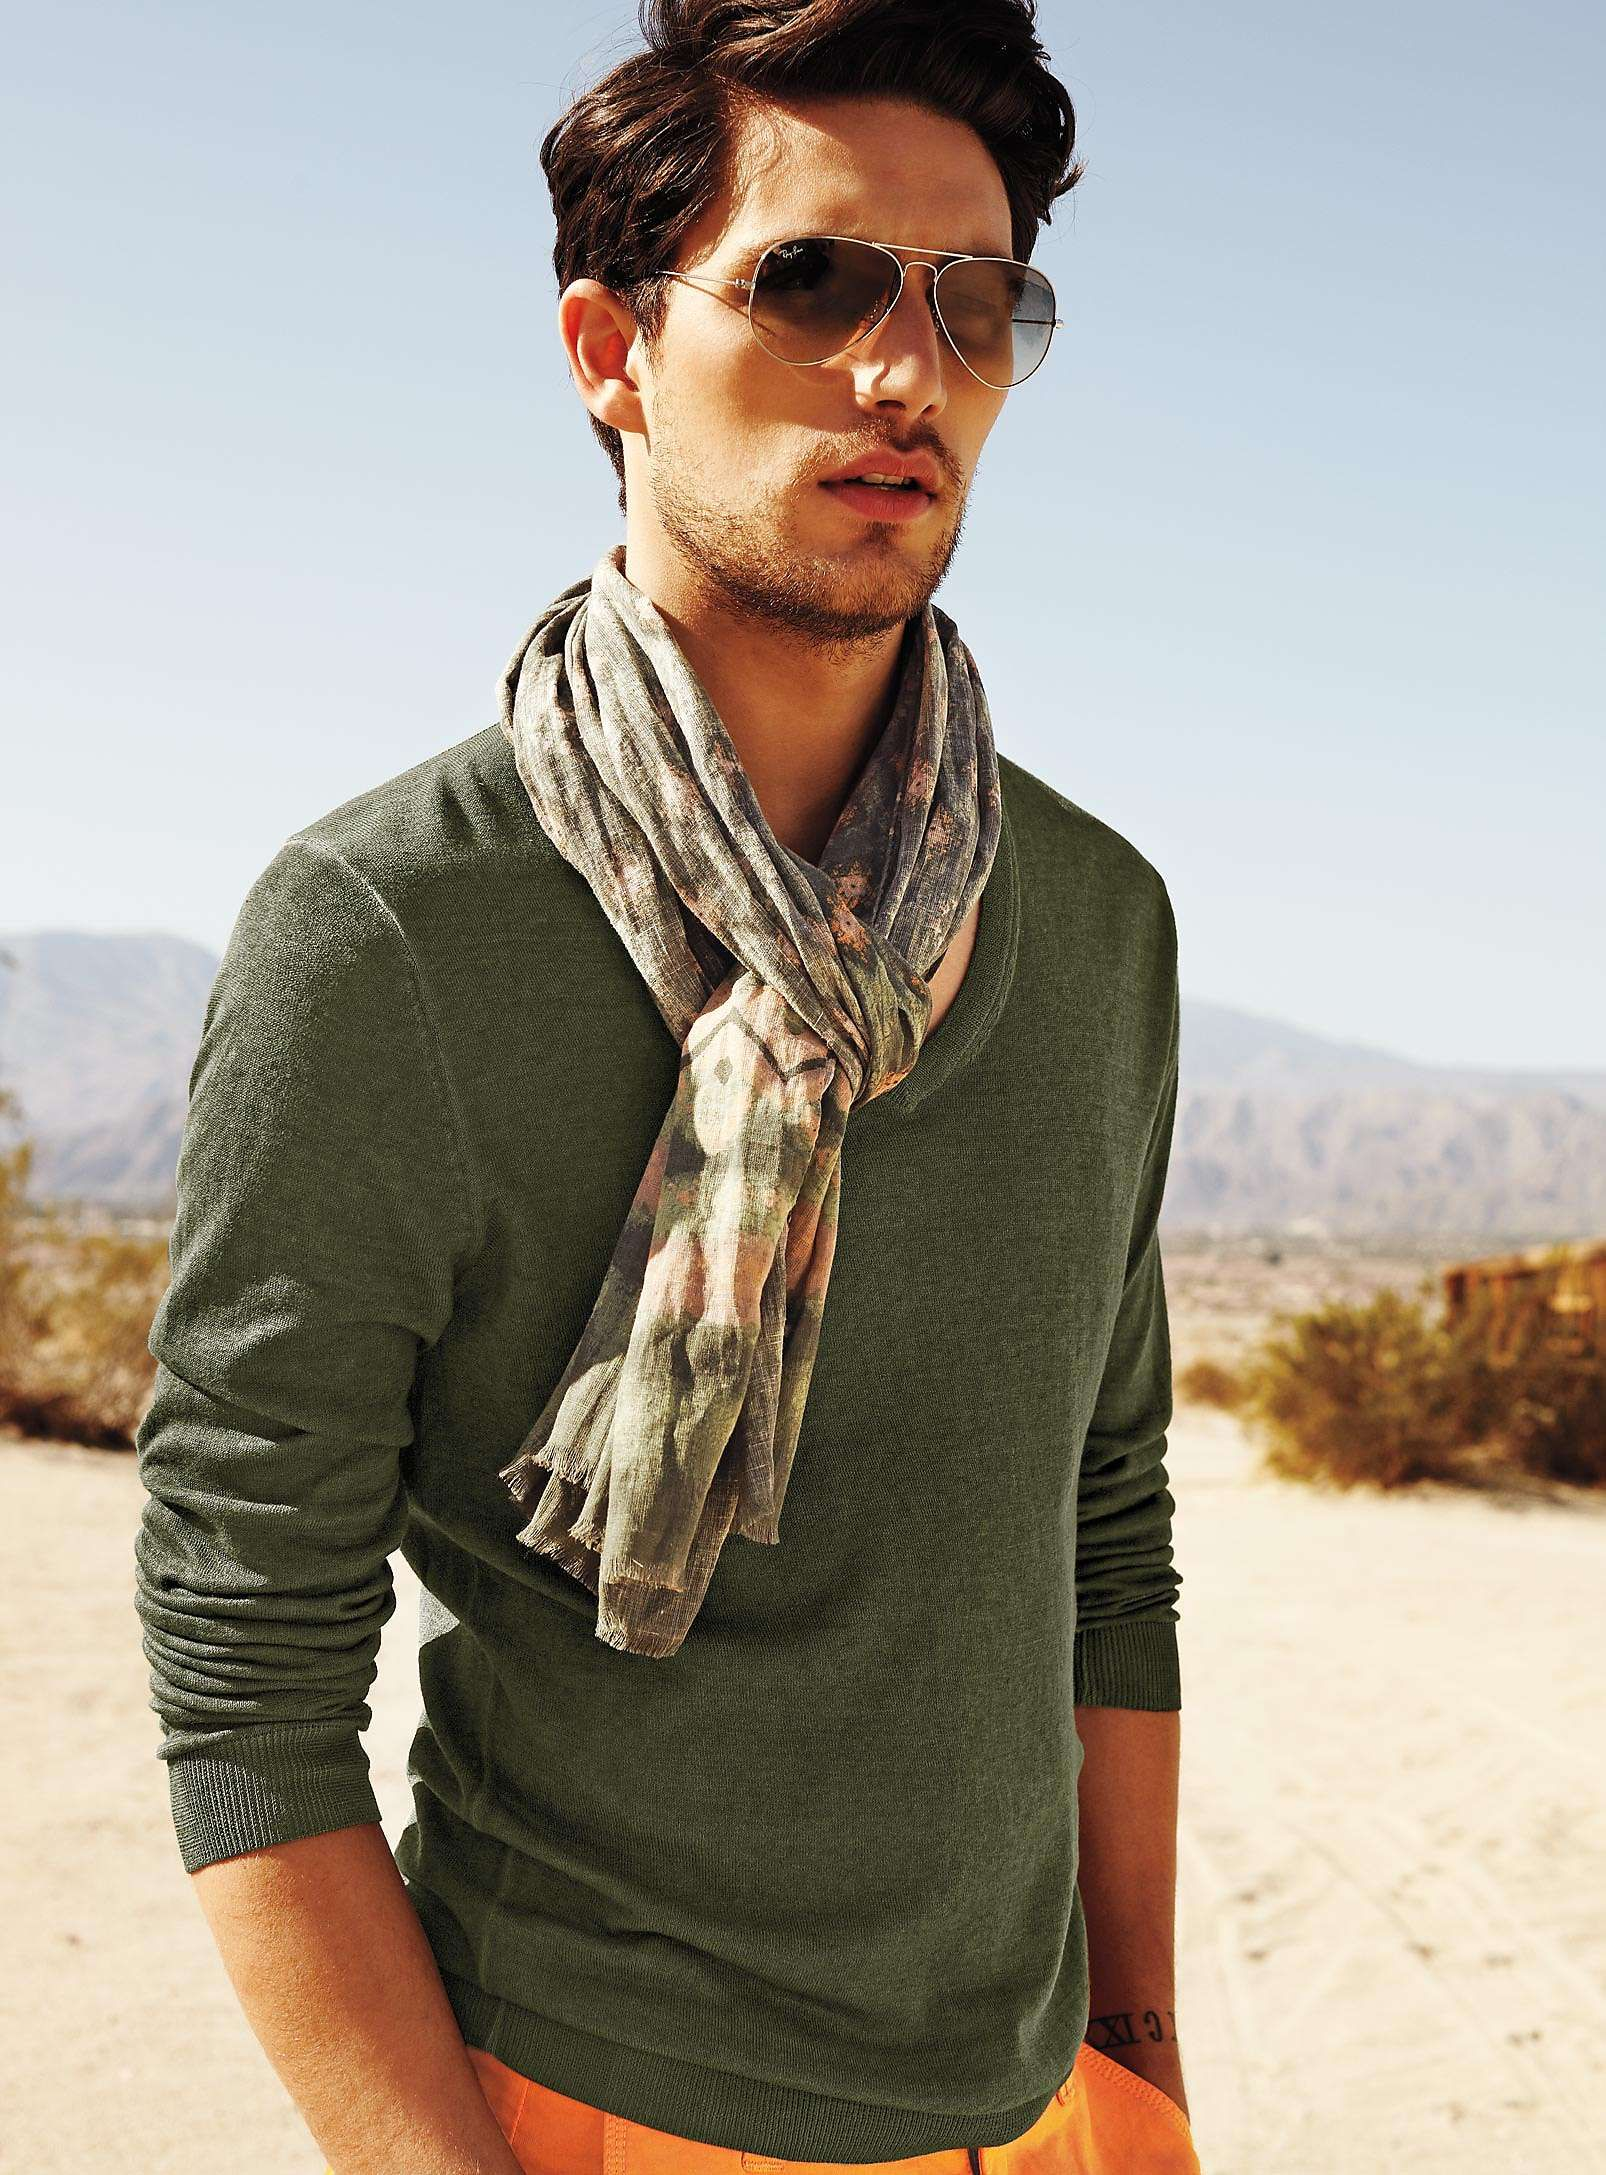 Green and scarf